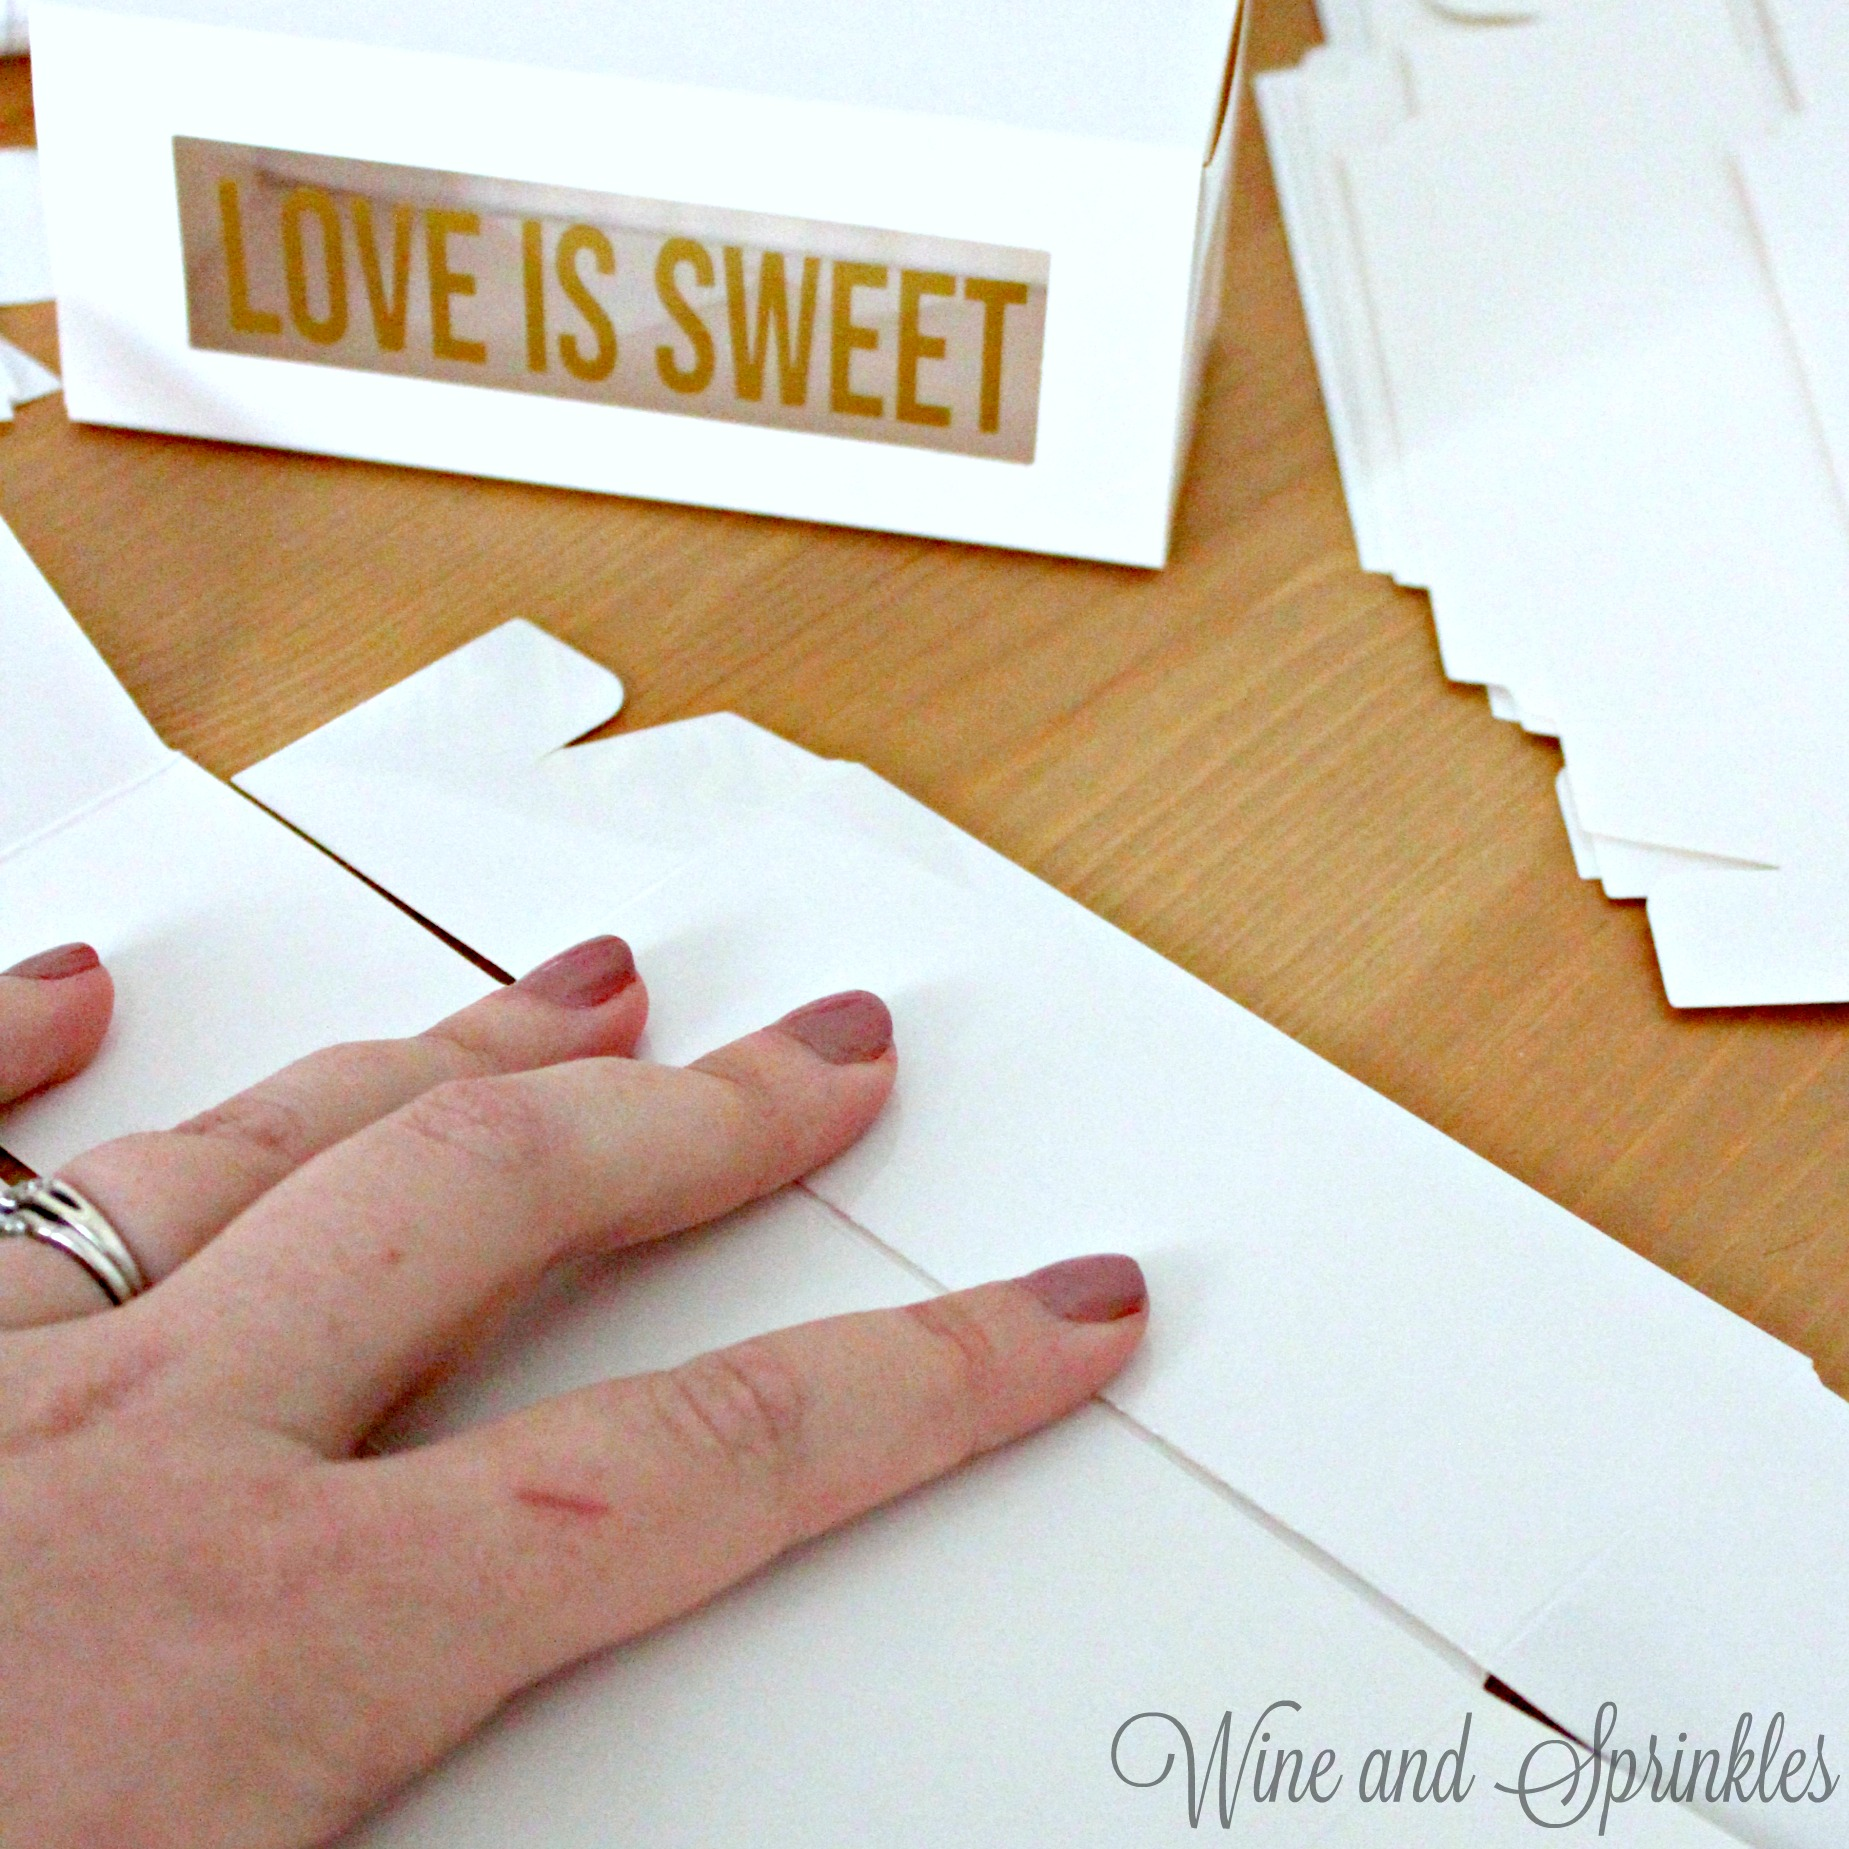 Be Our Guest Macaron Box DIY Wedding Favors #diywedding #svgfiles #macaron